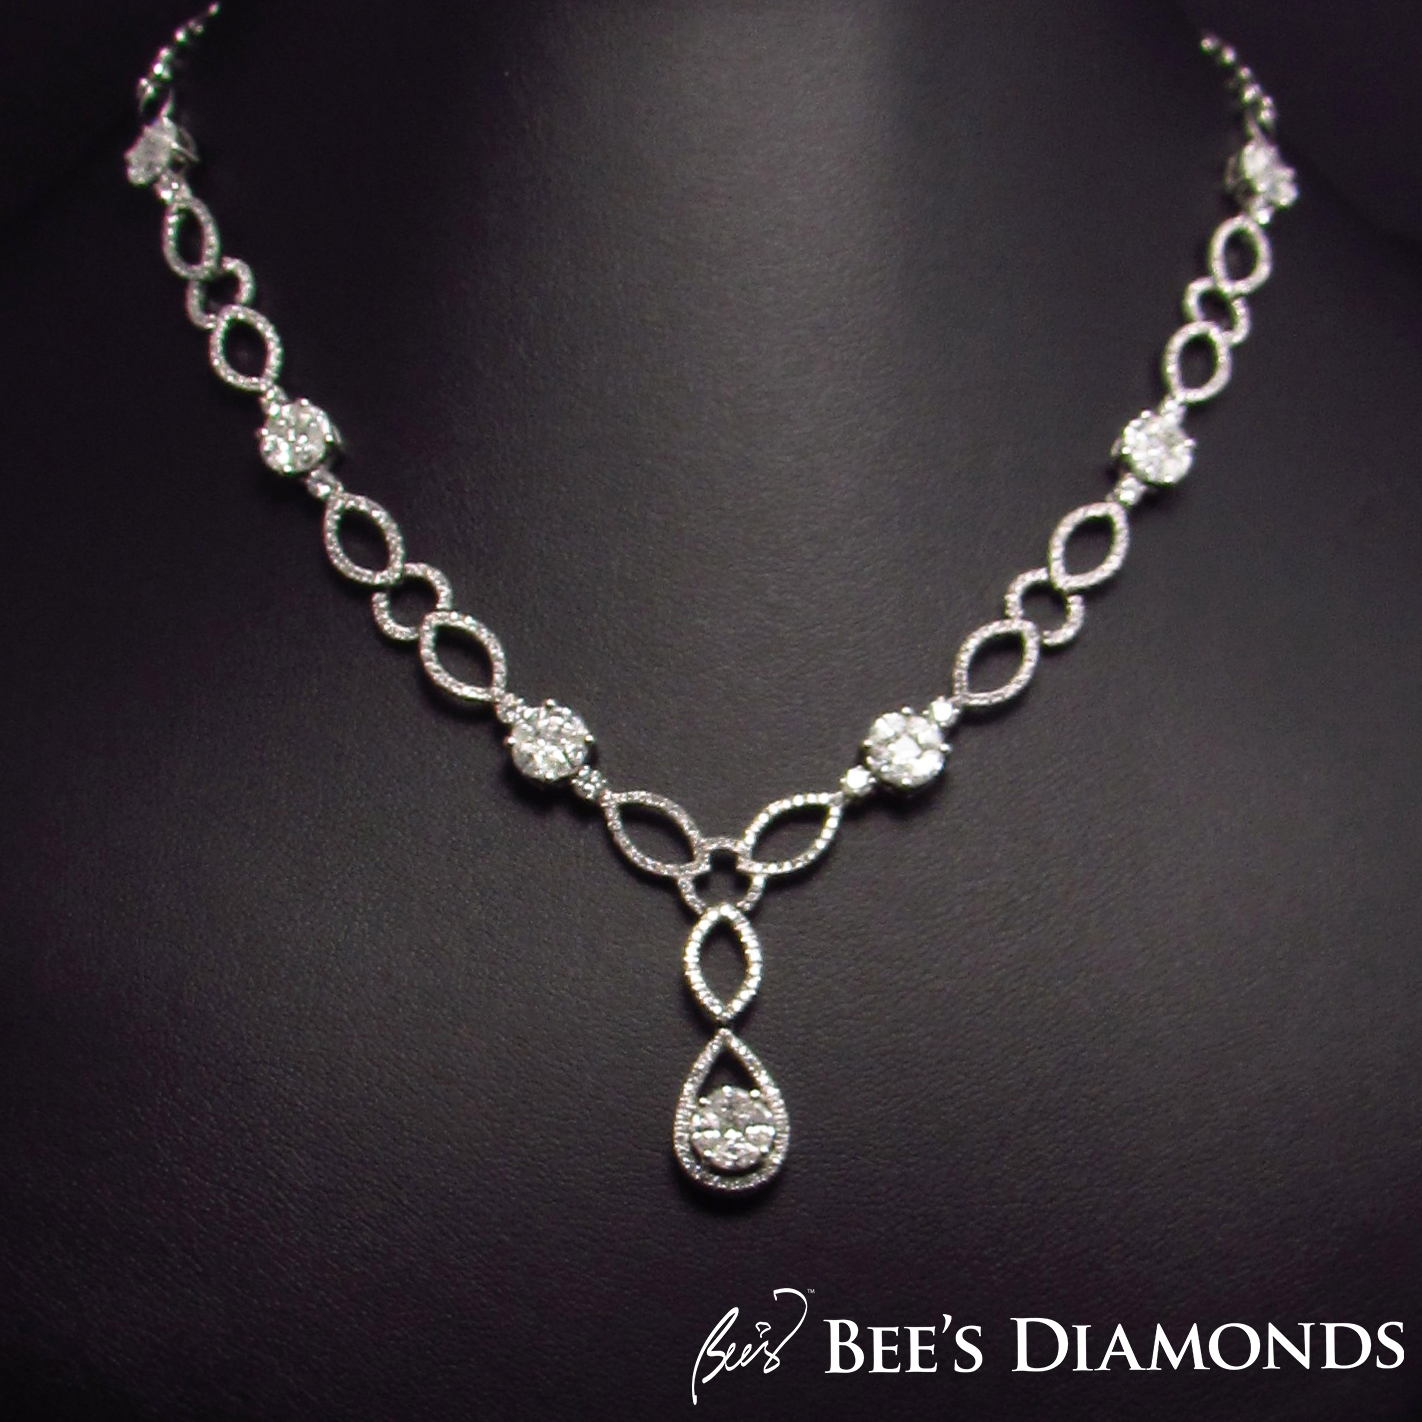 Diamond bell shaped necklace, bridal jewelry, Bee's Diamonds